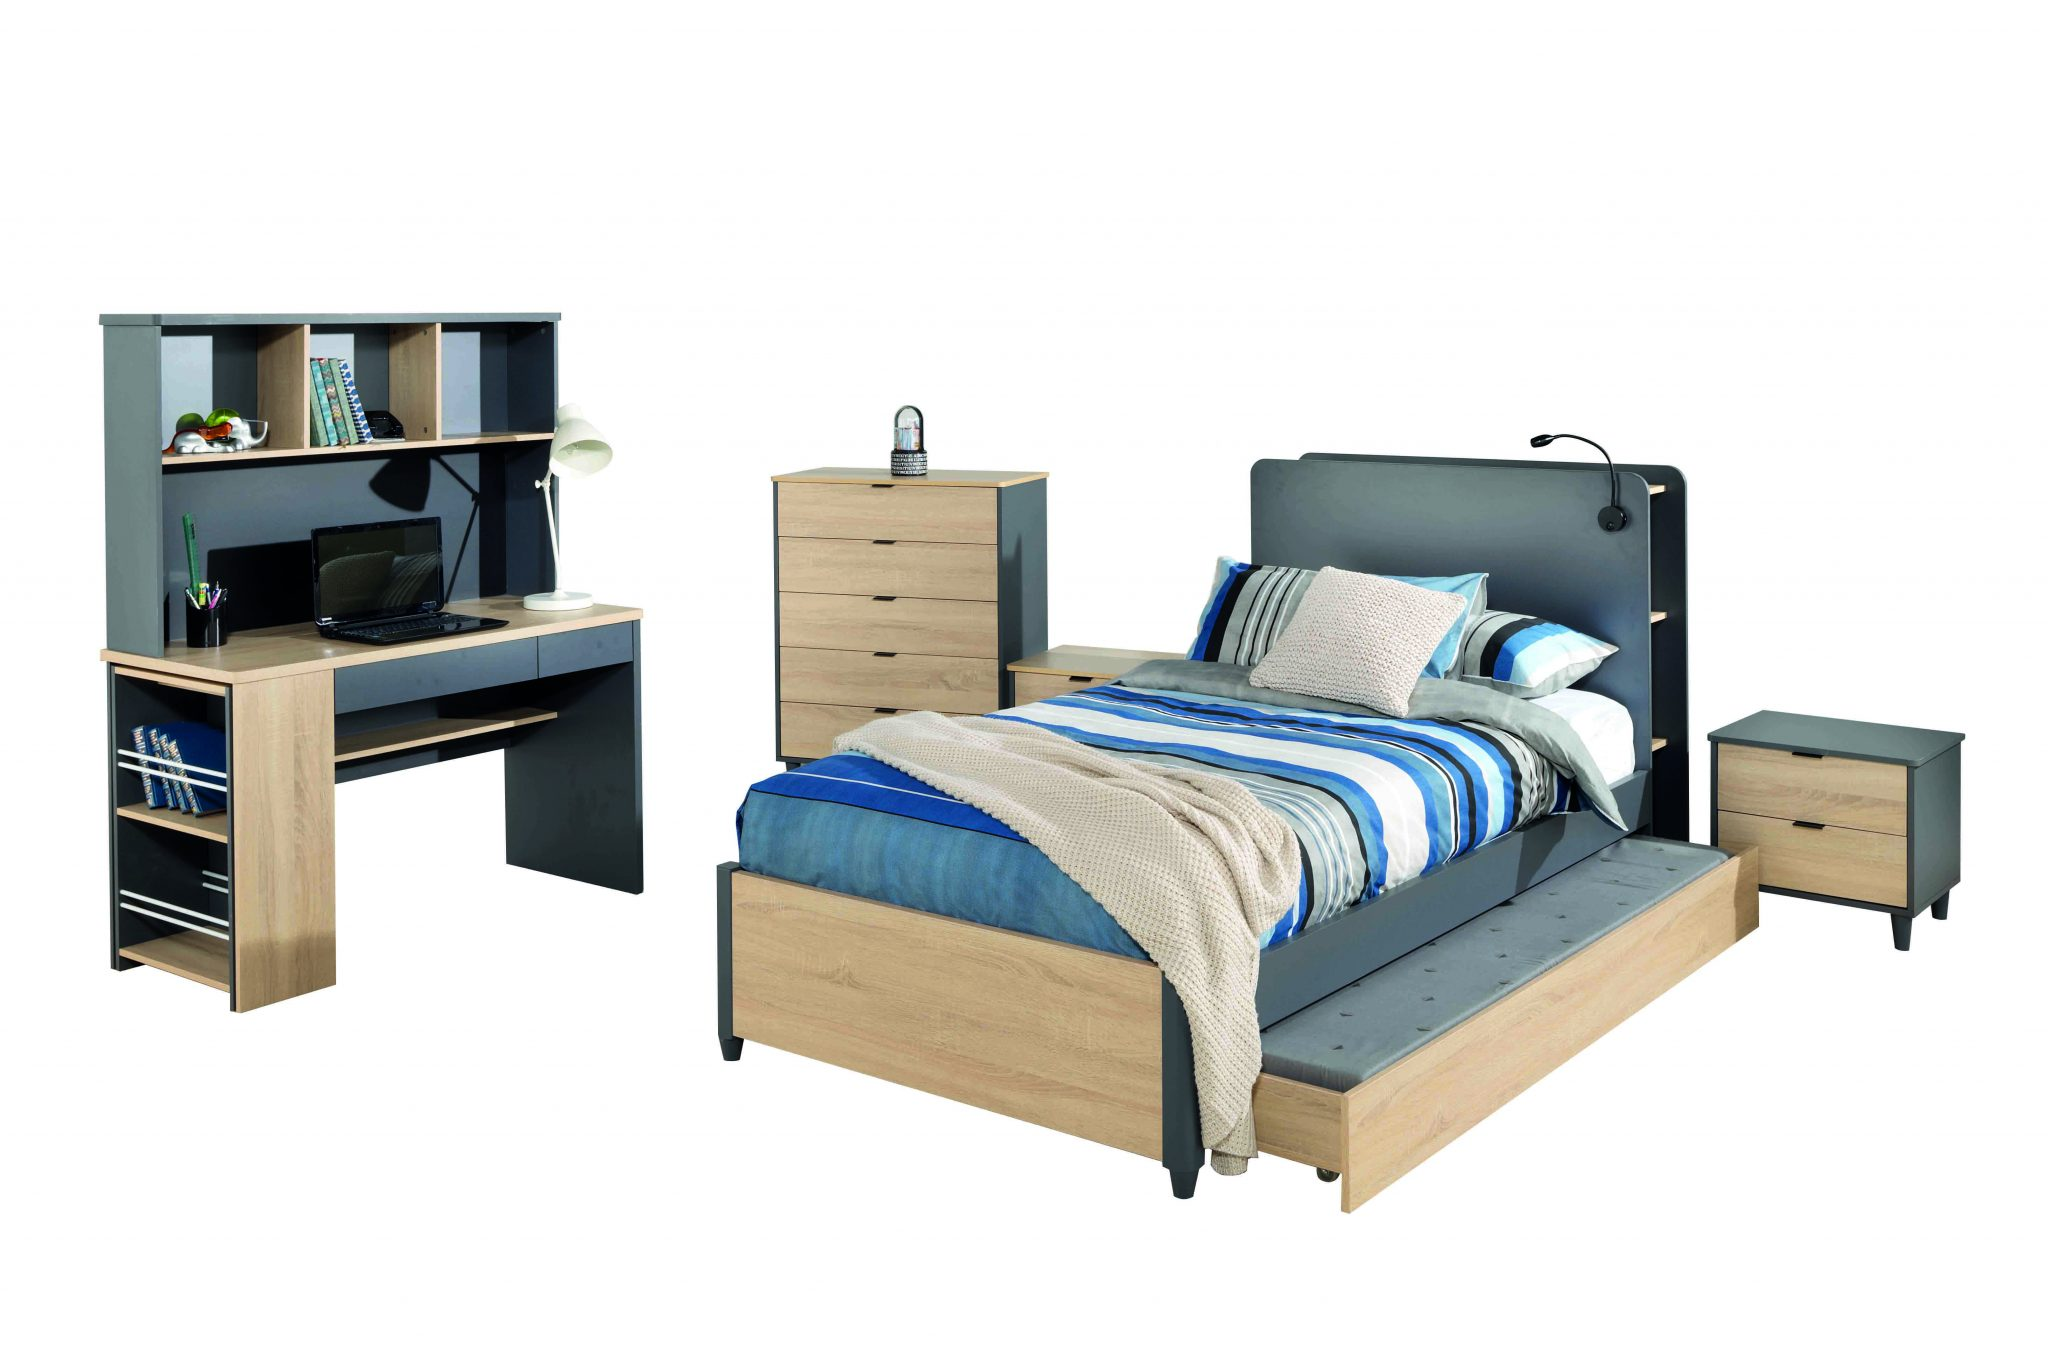 Oscar Single Bed, Bedside, Tallboy & Desk, Hutch & Shelf (2)